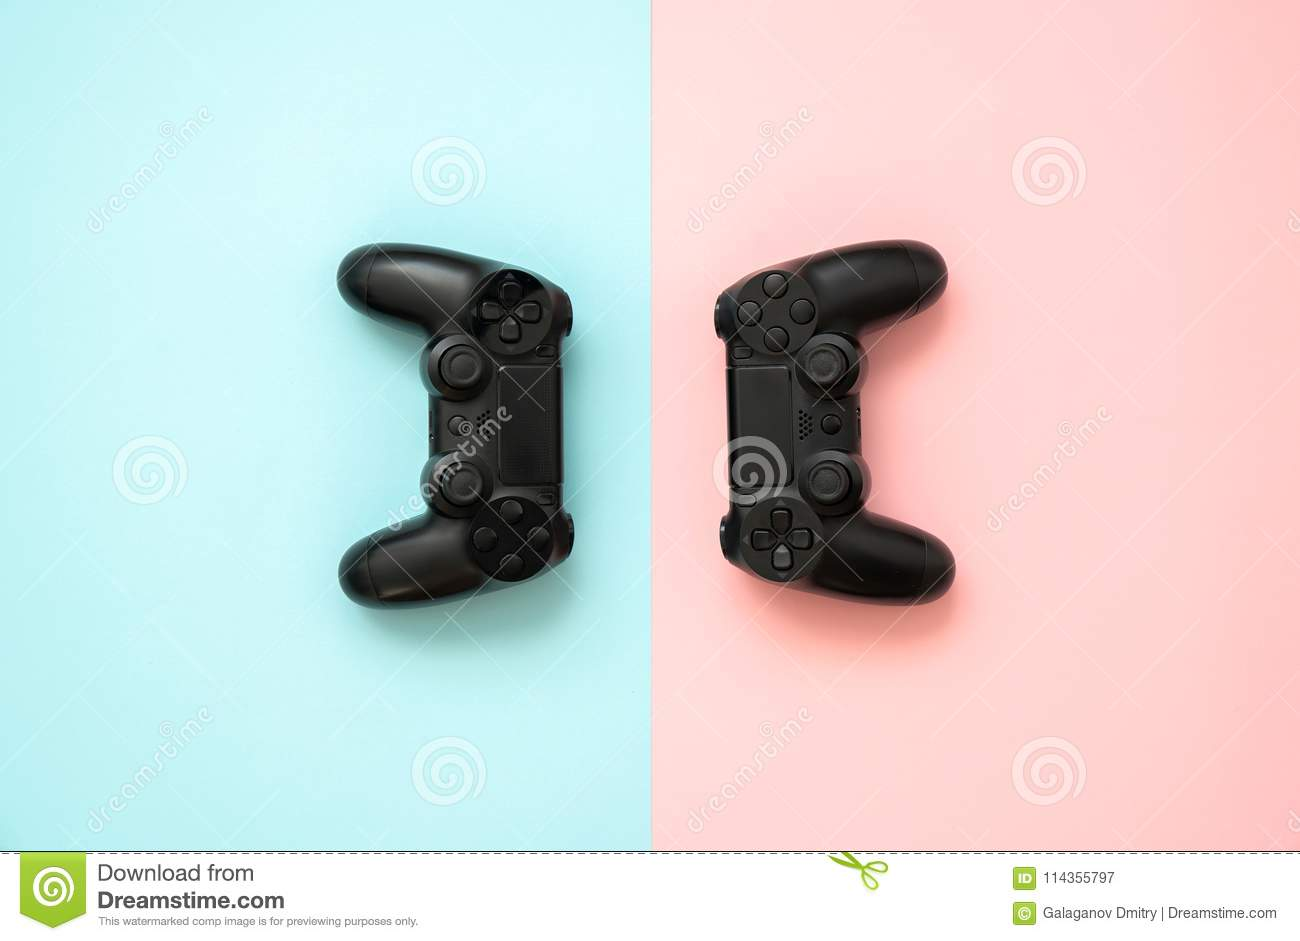 Game joystick console with electronics, accessories, pink and blue background.